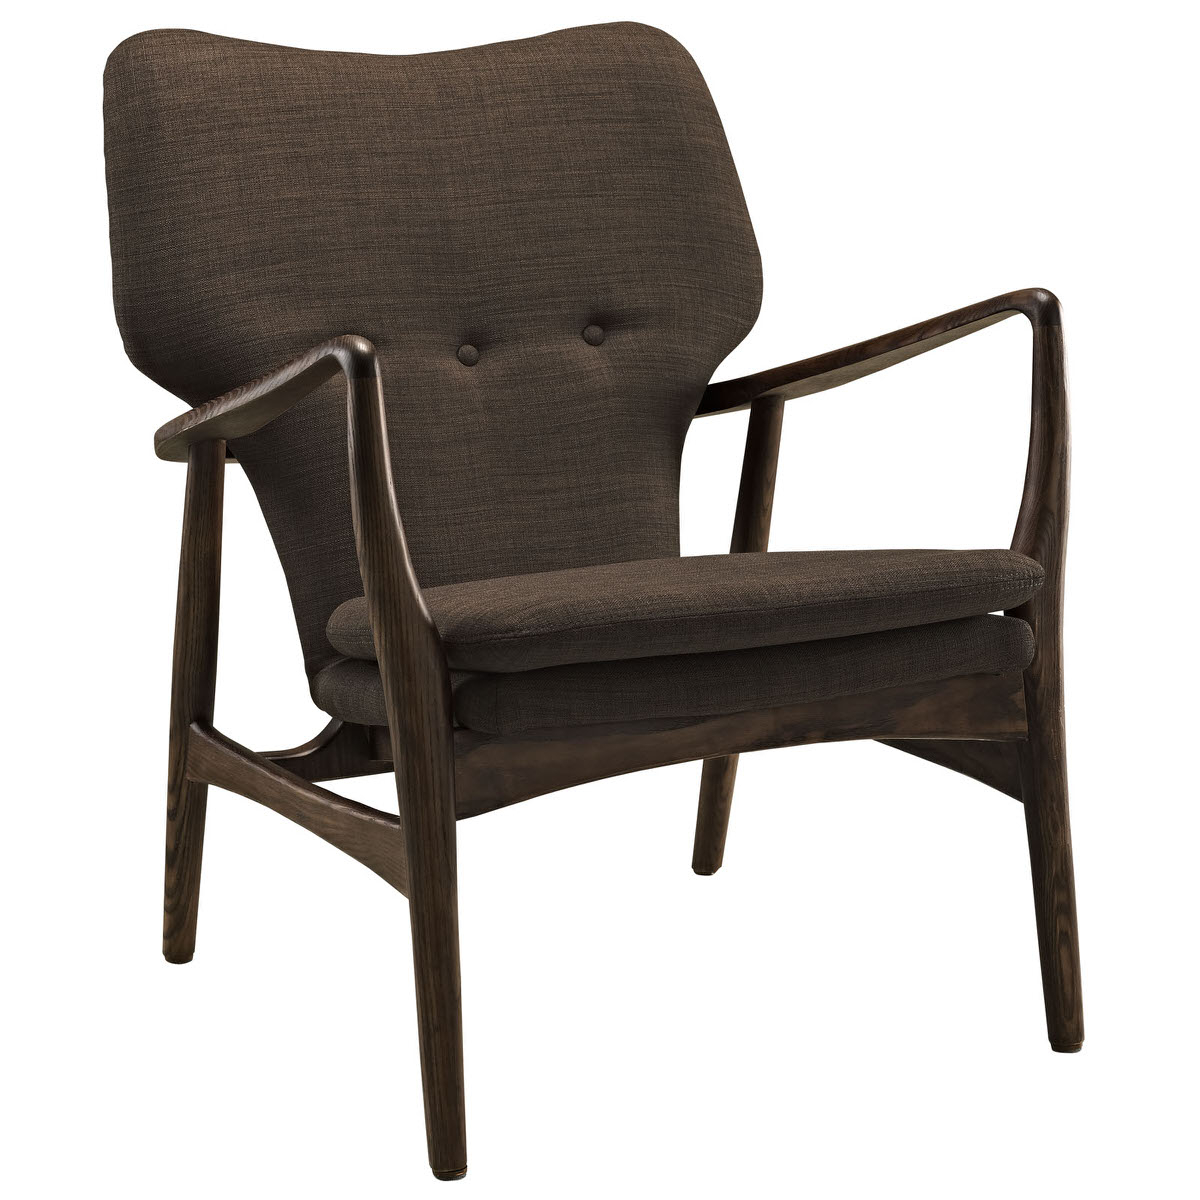 Heed Upholstered Lounge Chair Walnut Brownmodway Throughout Revolve Swivel Accent Chairs (Photo 7 of 23)